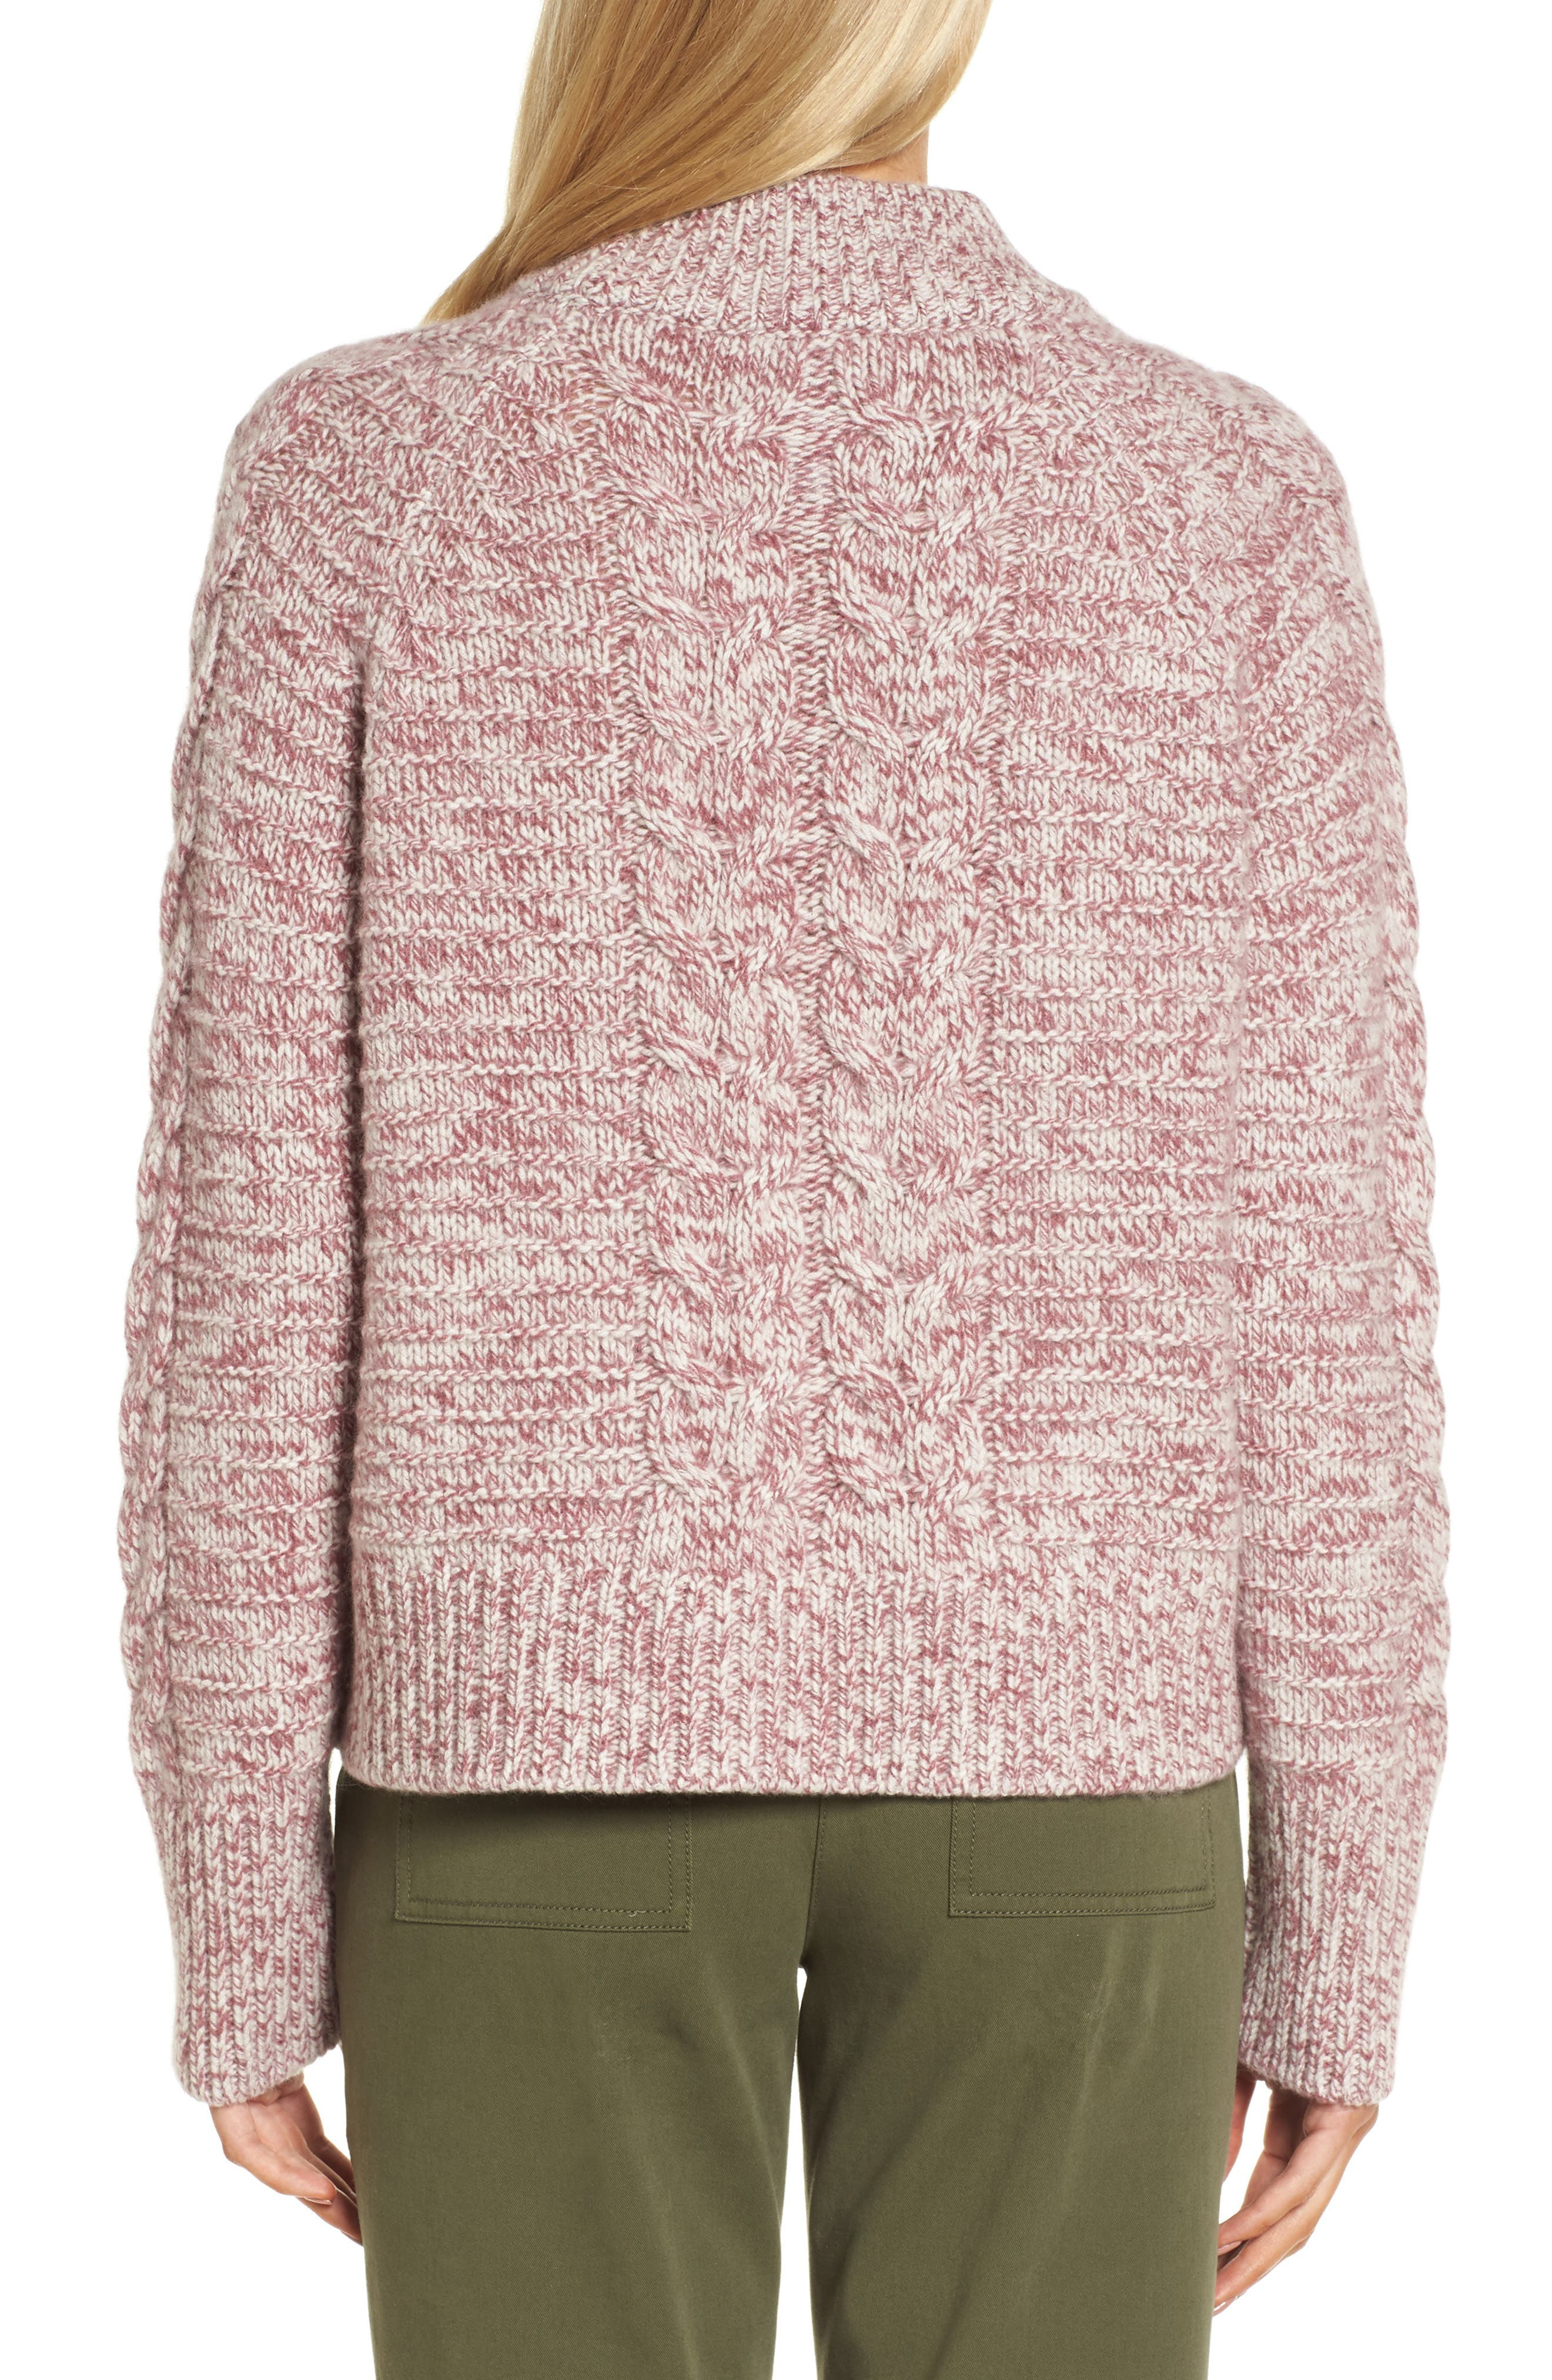 Cashmere Cable Knit Sweater,                             Alternate thumbnail 2, color,                             938